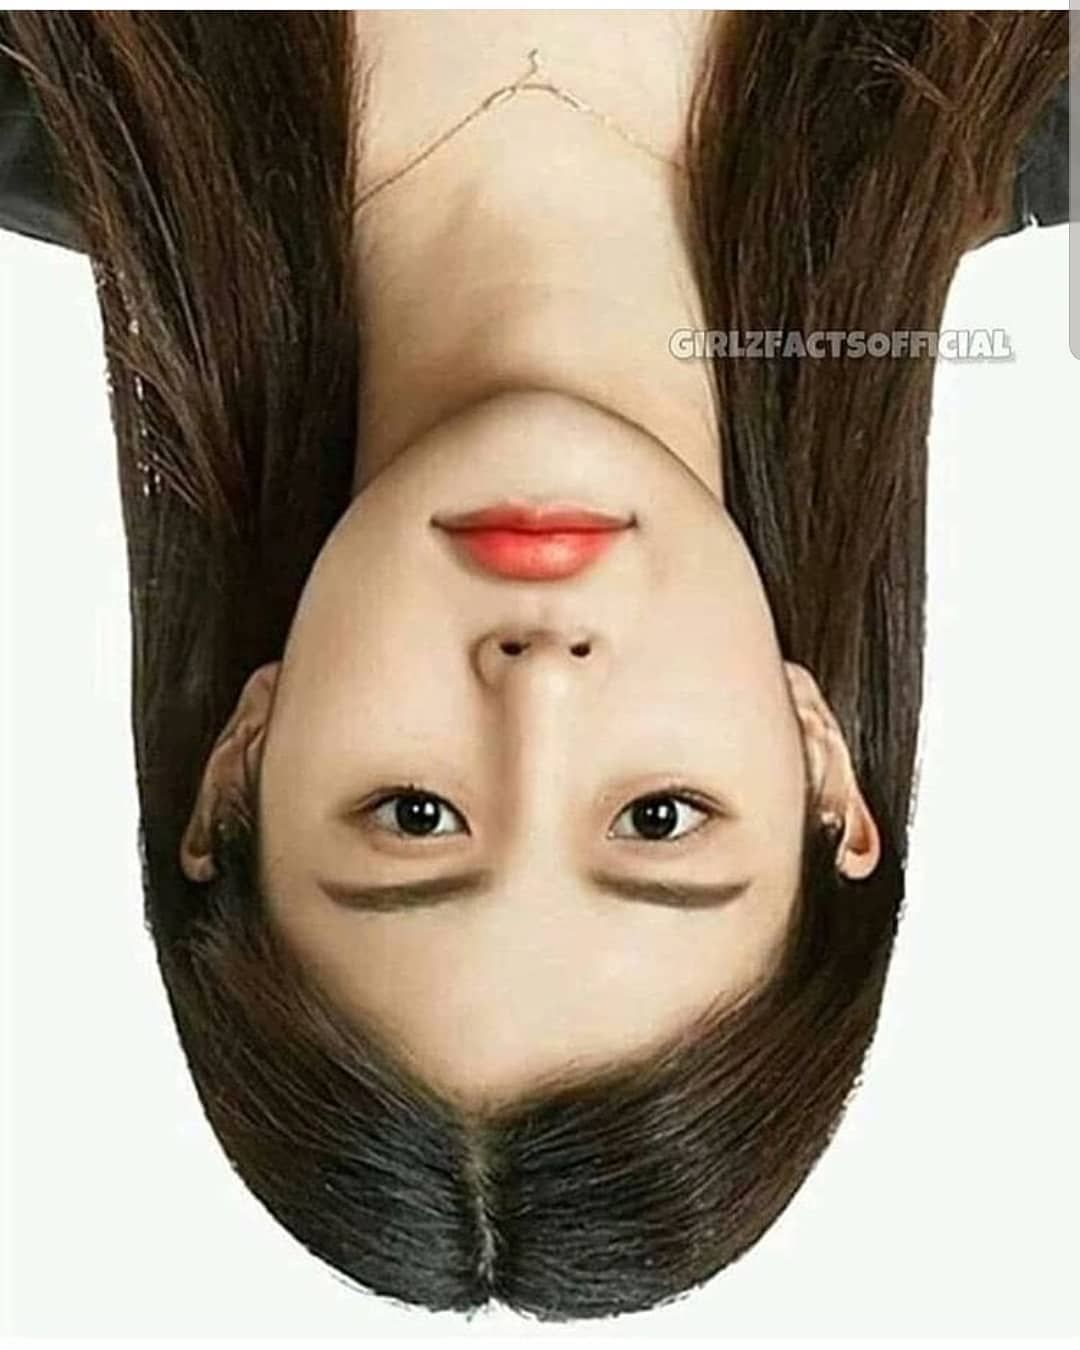 Turn Your Phone Upside Down And See Magic Love Instagood Photooftheday Fashion Turn Your Phone Upside Dow Funny Optical Illusions Cool Illusions Illusions